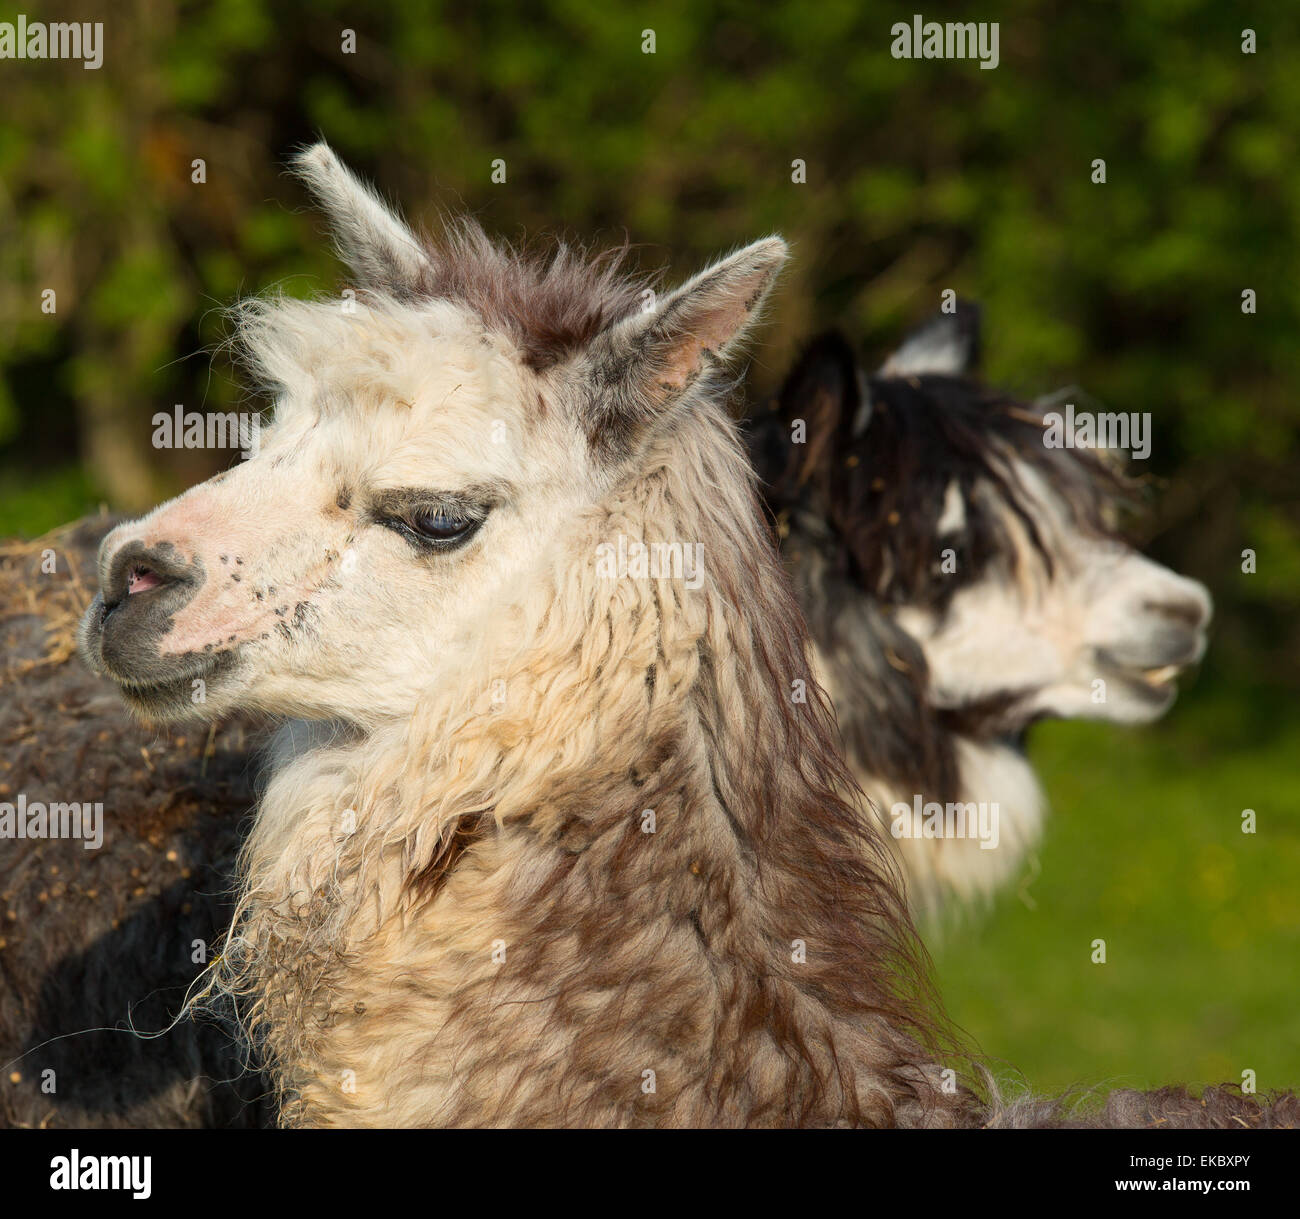 Two Alpacas in profile with head and face, resembles small llama with coat used for wool and cute smile - Stock Image